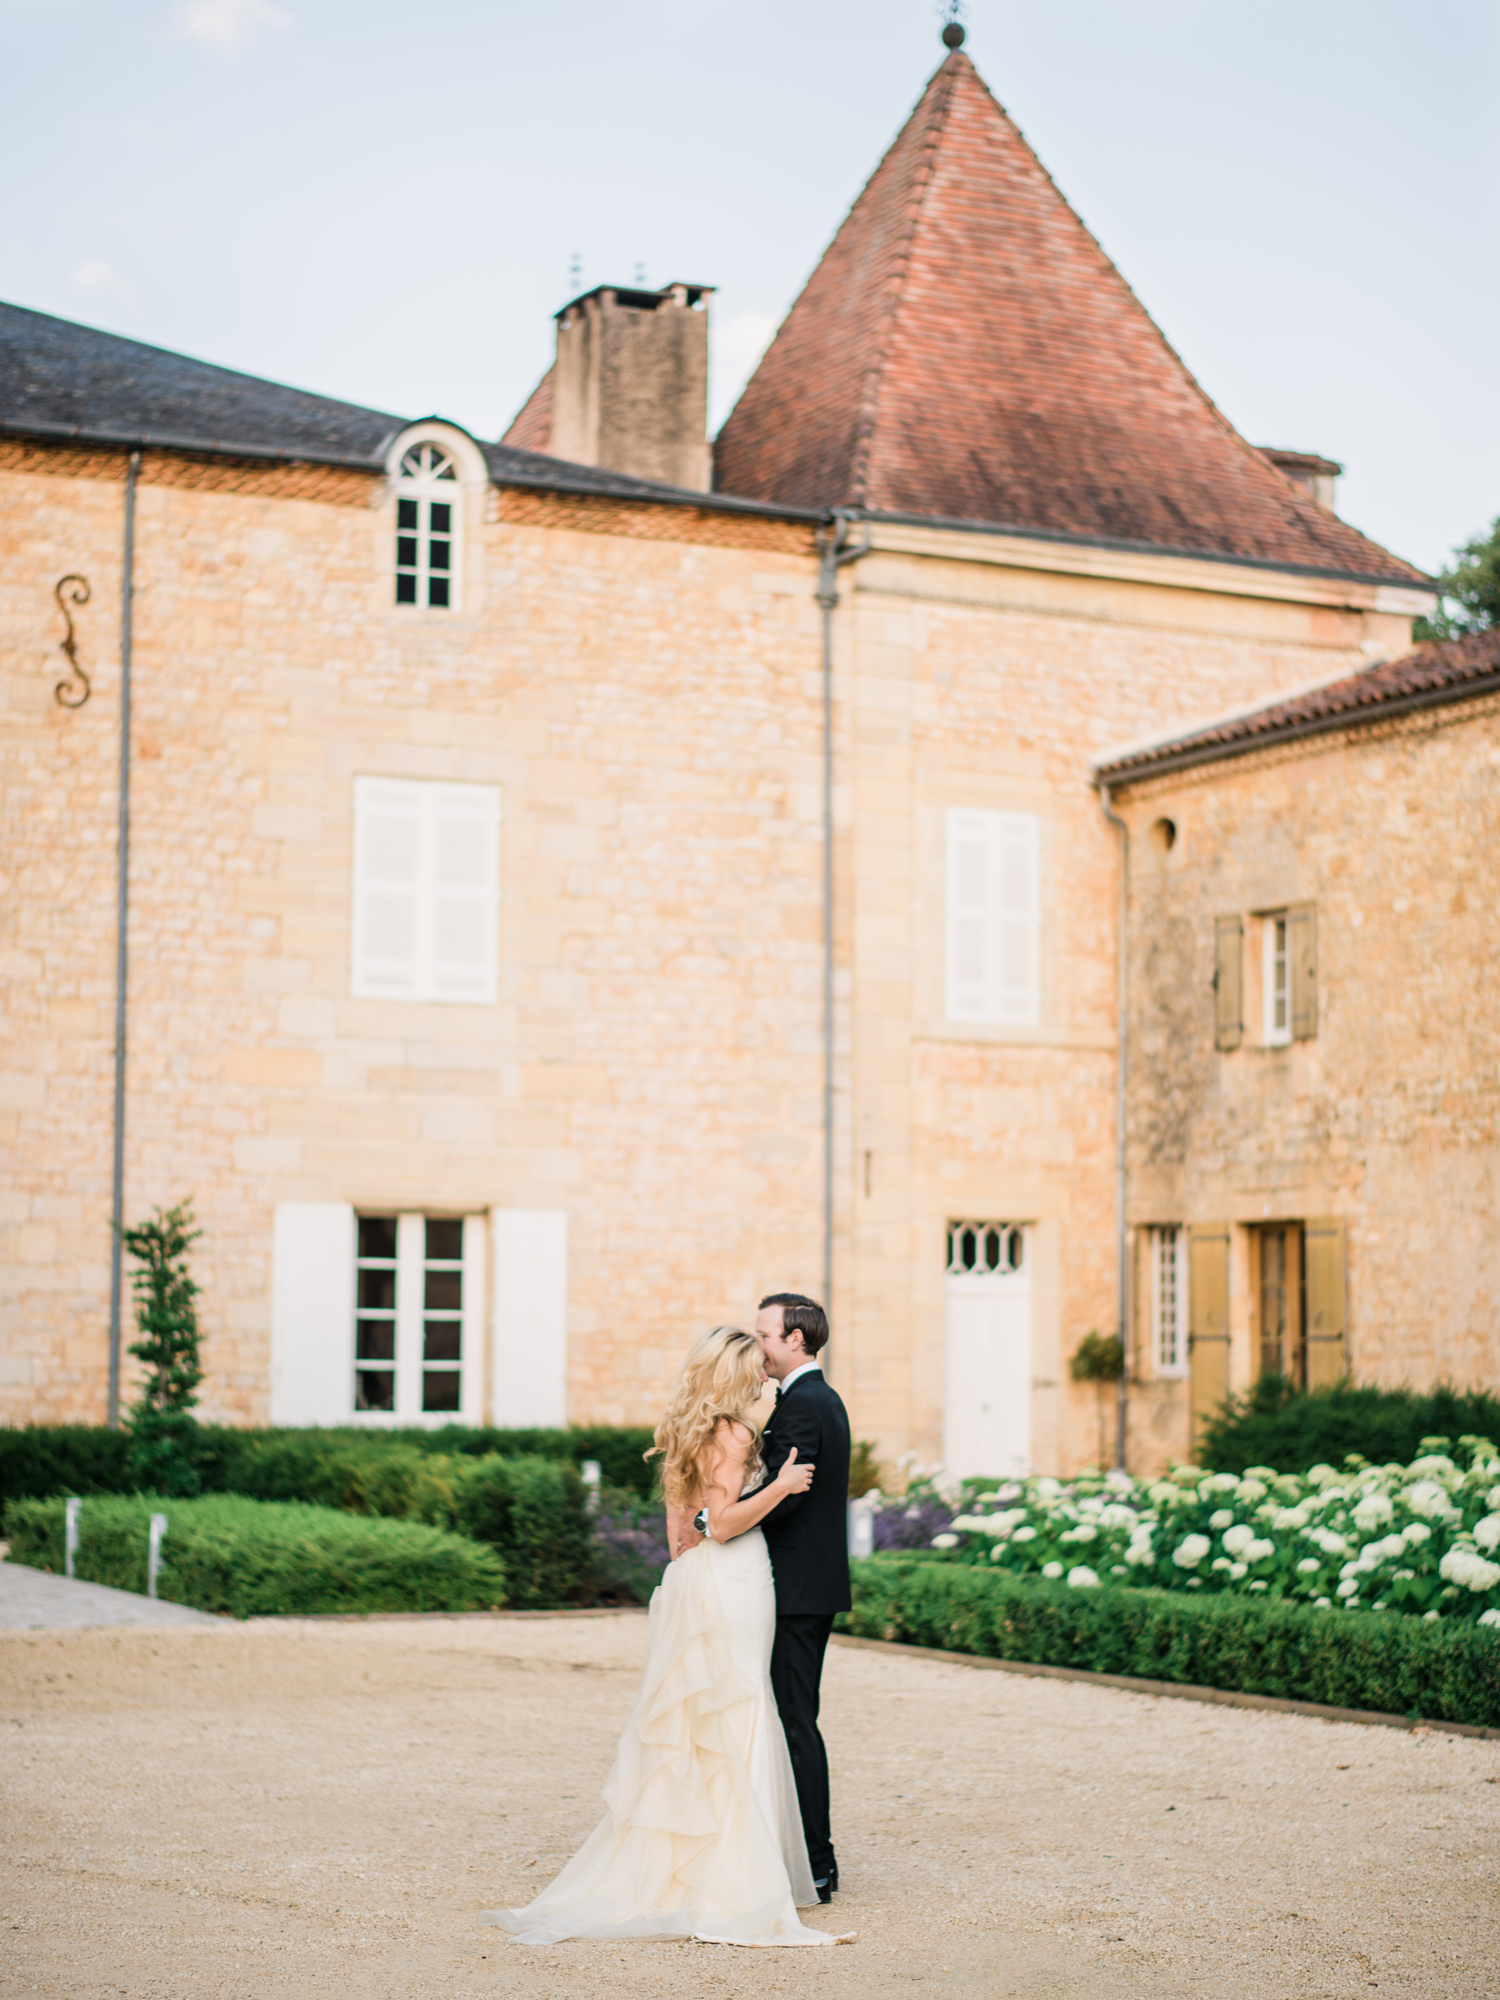 092-french-chateau-destination-wedding-south-france-film-photographer-ryan-flynn.jpg